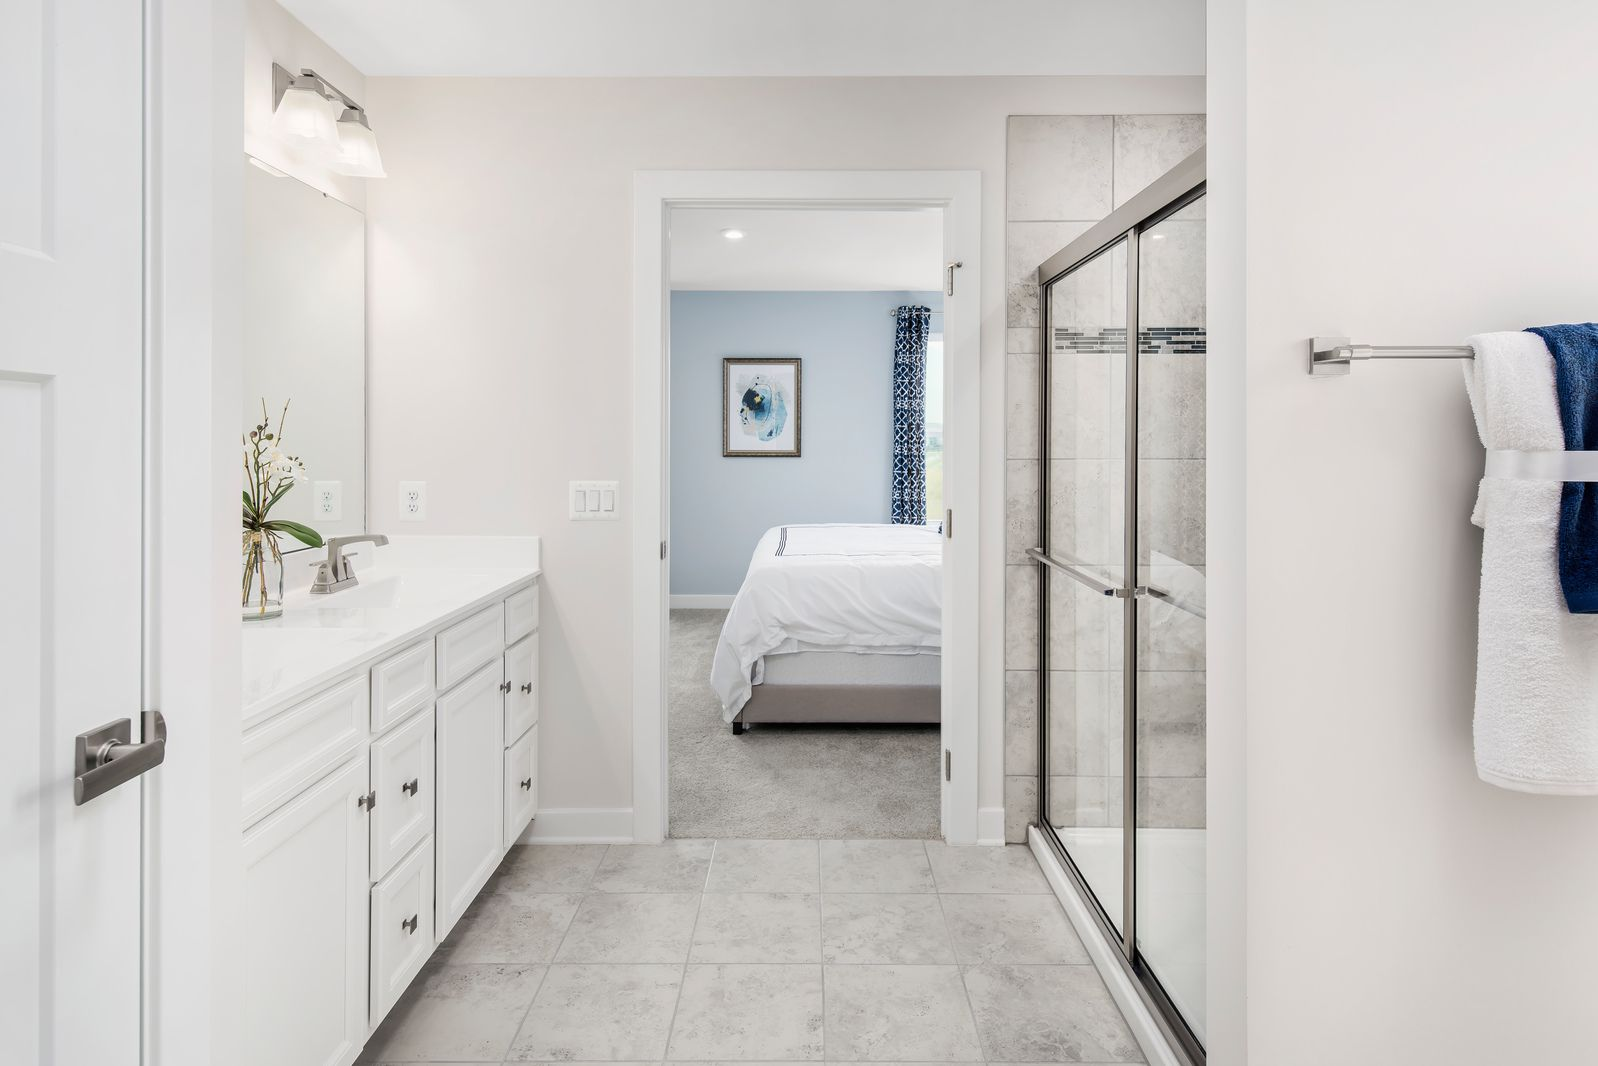 Bathroom featured in the Eden Cay w/ Full Basement By Ryan Homes in Columbus, OH